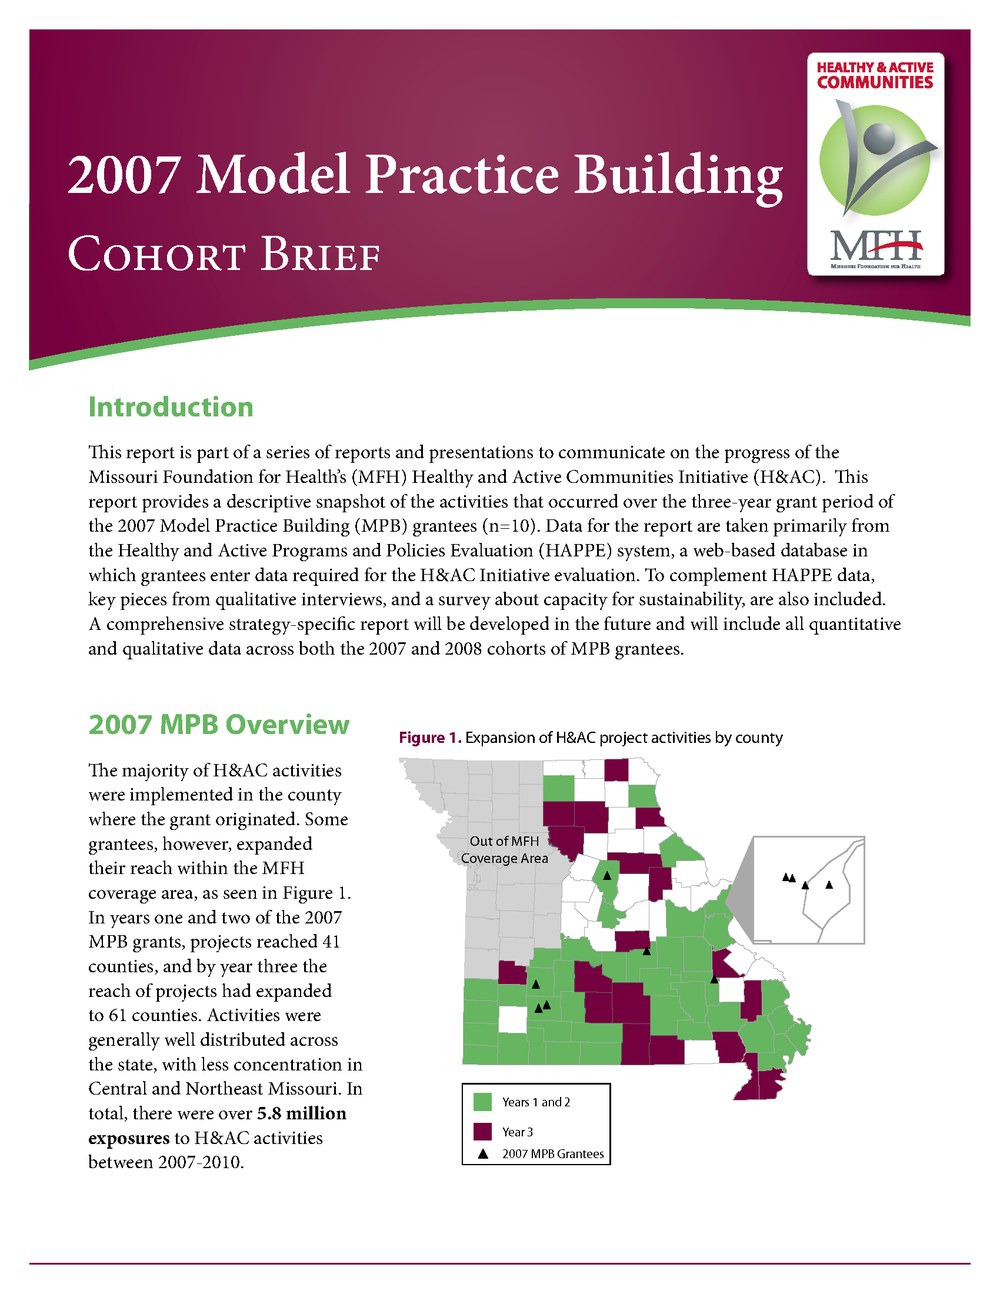 Healthy & Active Communities Model Practice Building Evaluation Report 2007